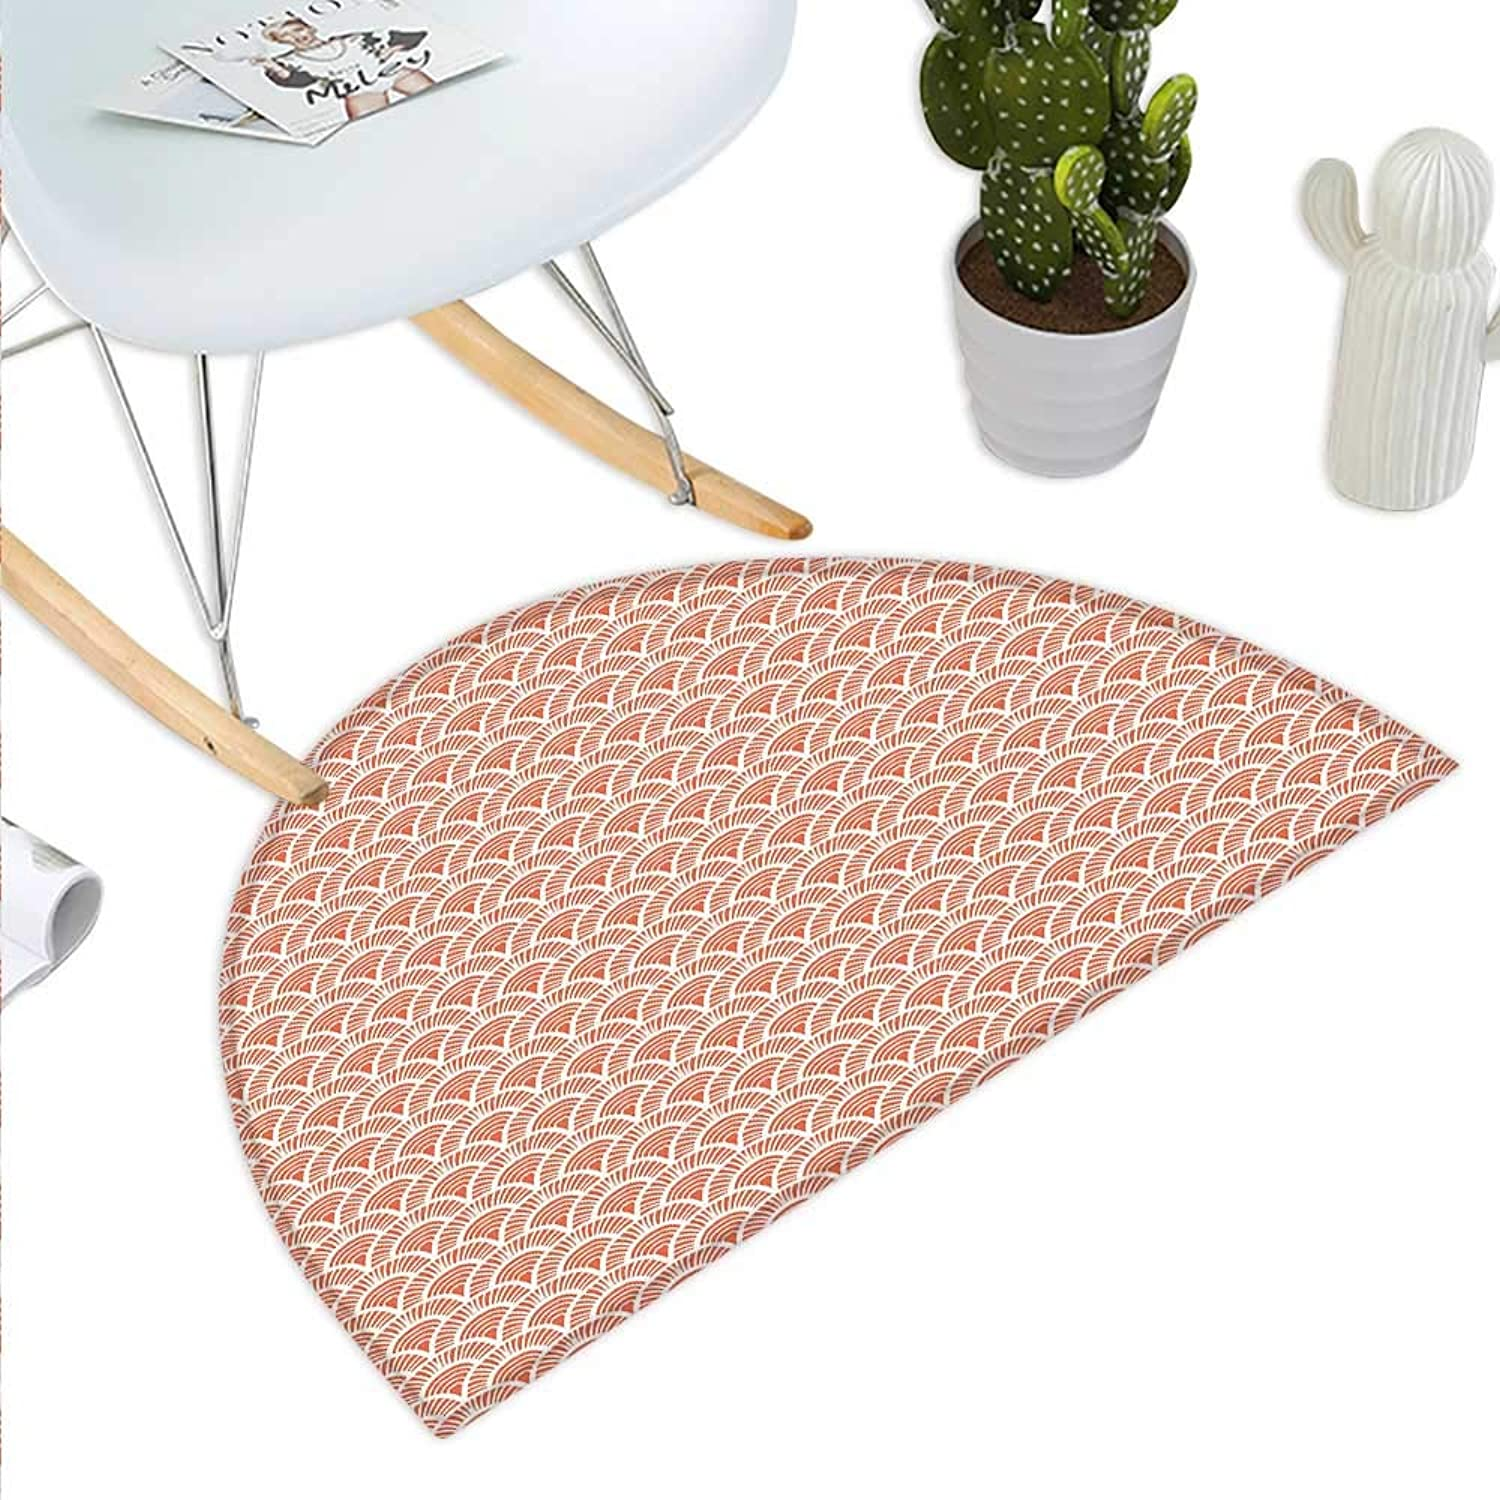 Asian Semicircle Doormat Scale Pattern with Half Circles and Lines Geometrical Elements Abstract Boho Tribal Halfmoon doormats H 39.3  xD 59  orange White